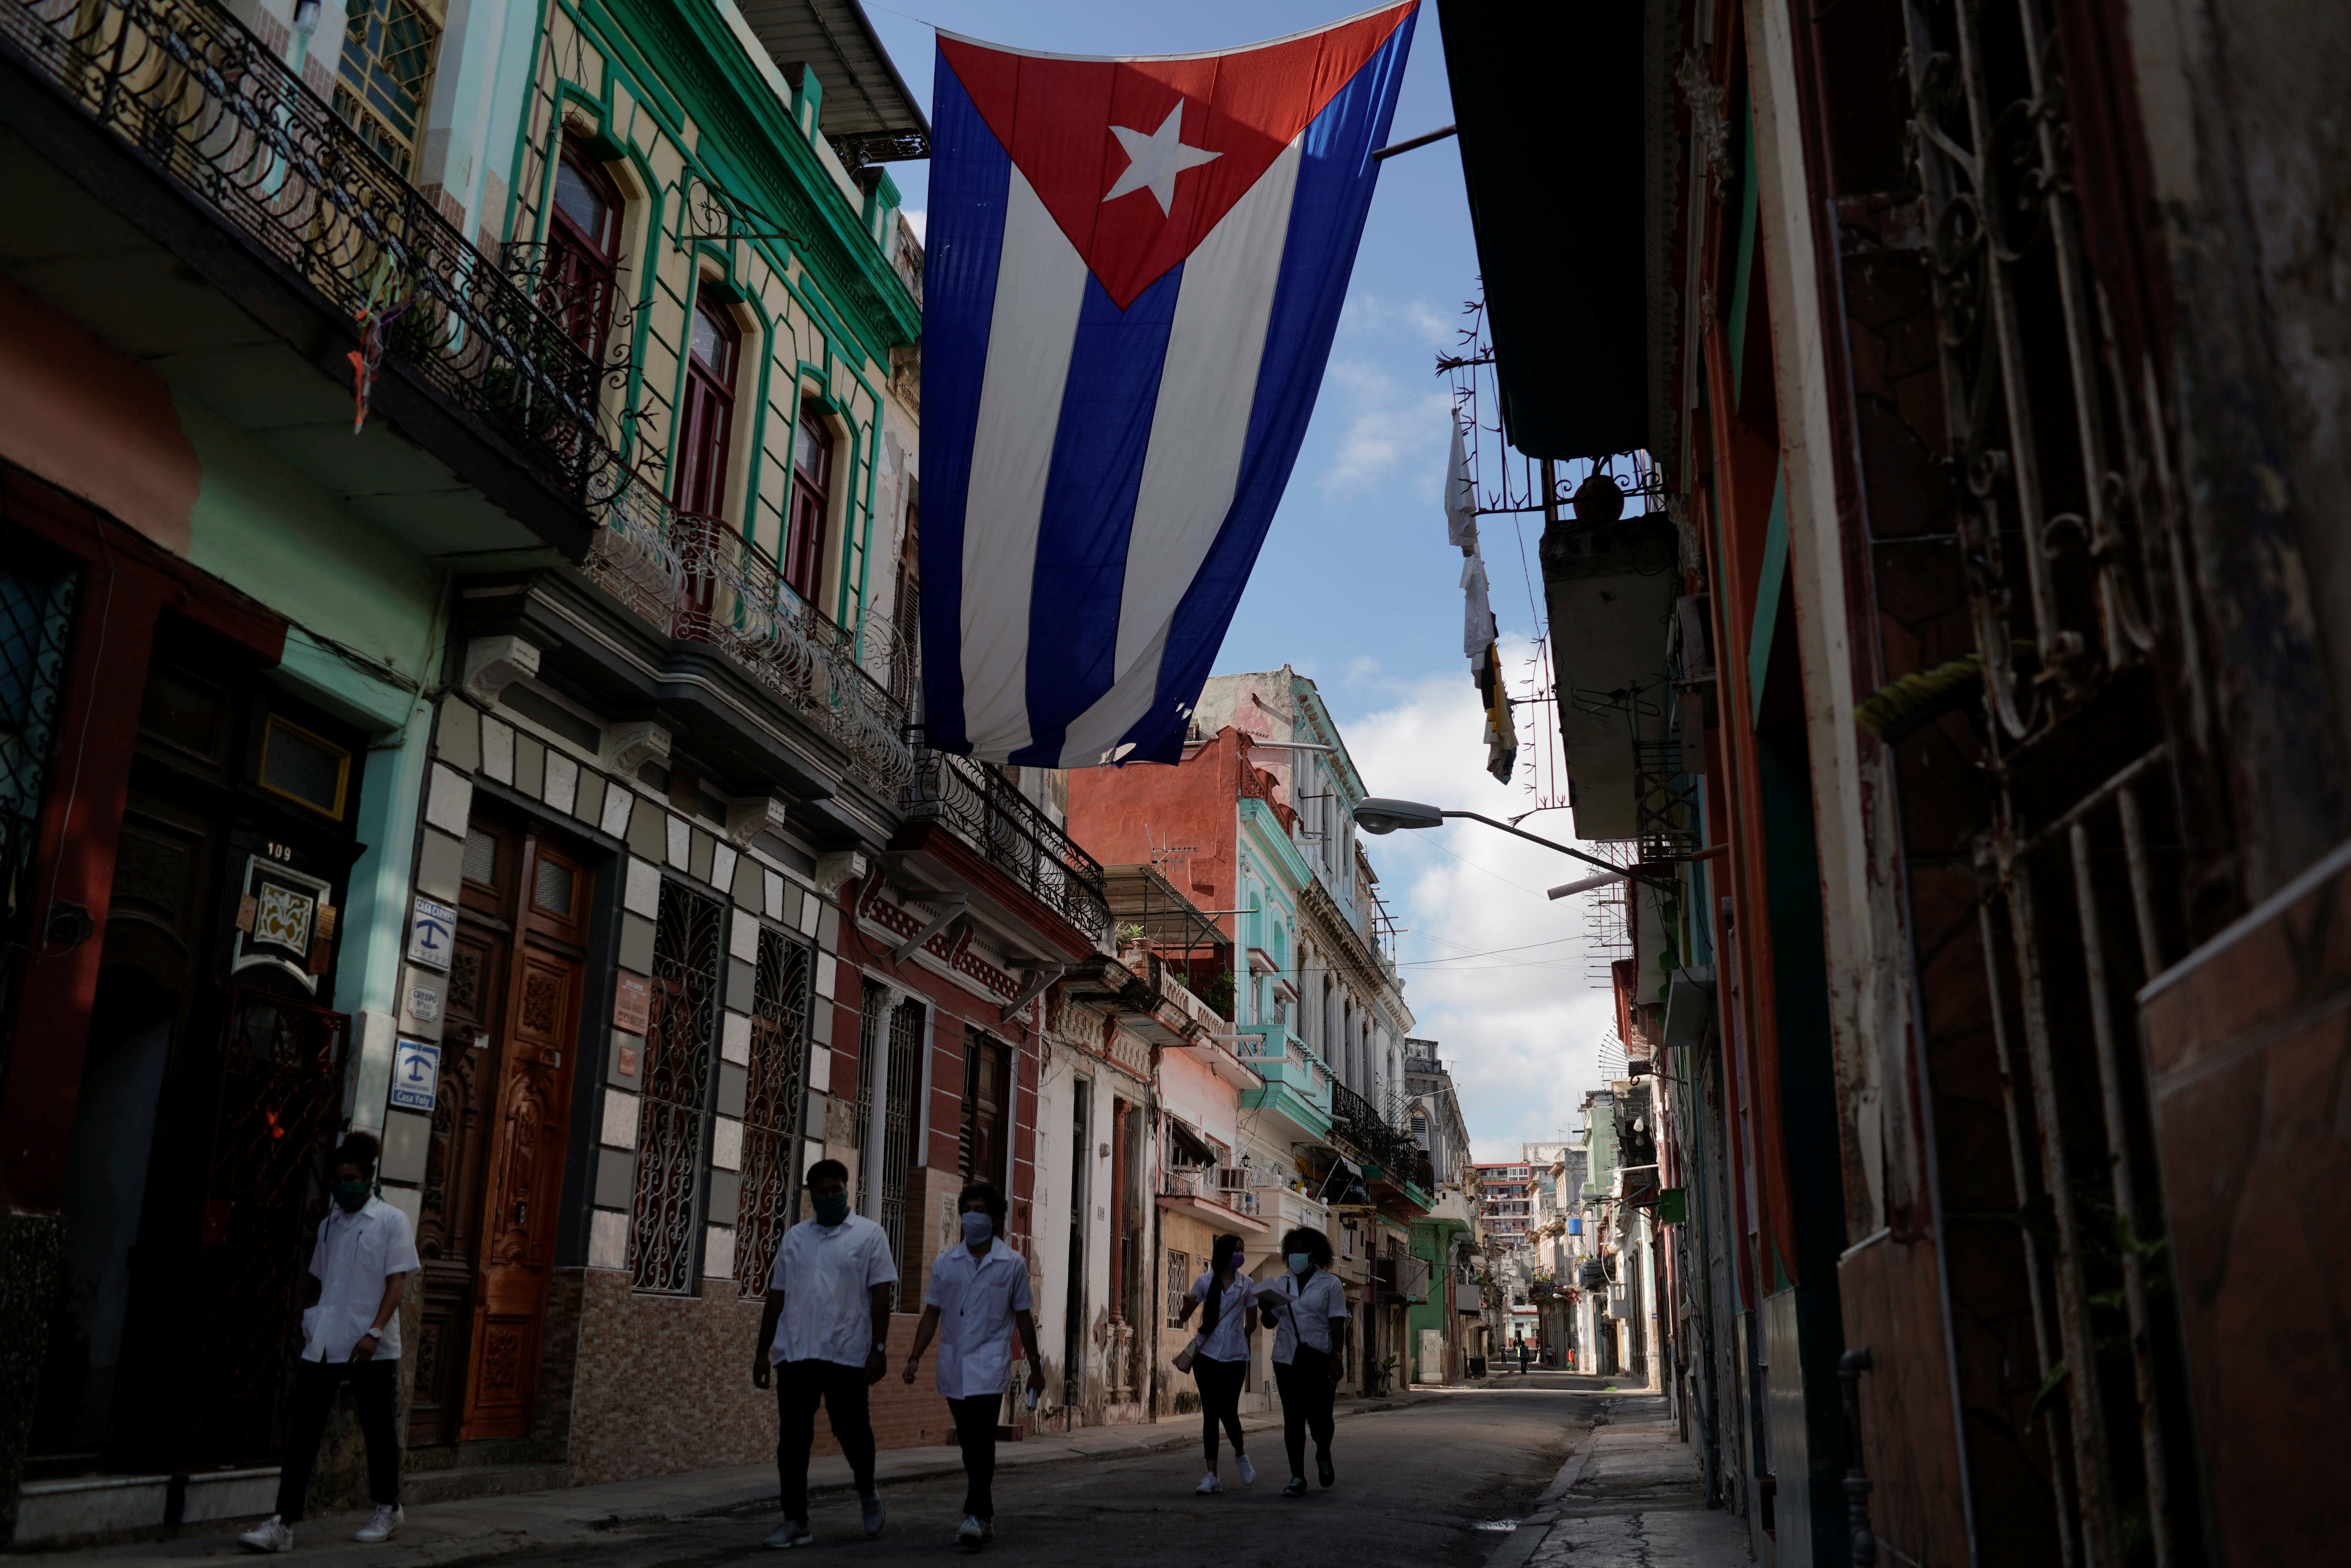 Medical students walk past a Cuban flag as they check door-to-door for people with symptoms amid concerns about the spread of the coronavirus disease (COVID-19), in downtown Havana, Cuba, May 12, 2020. REUTERS/Alexandre Meneghini